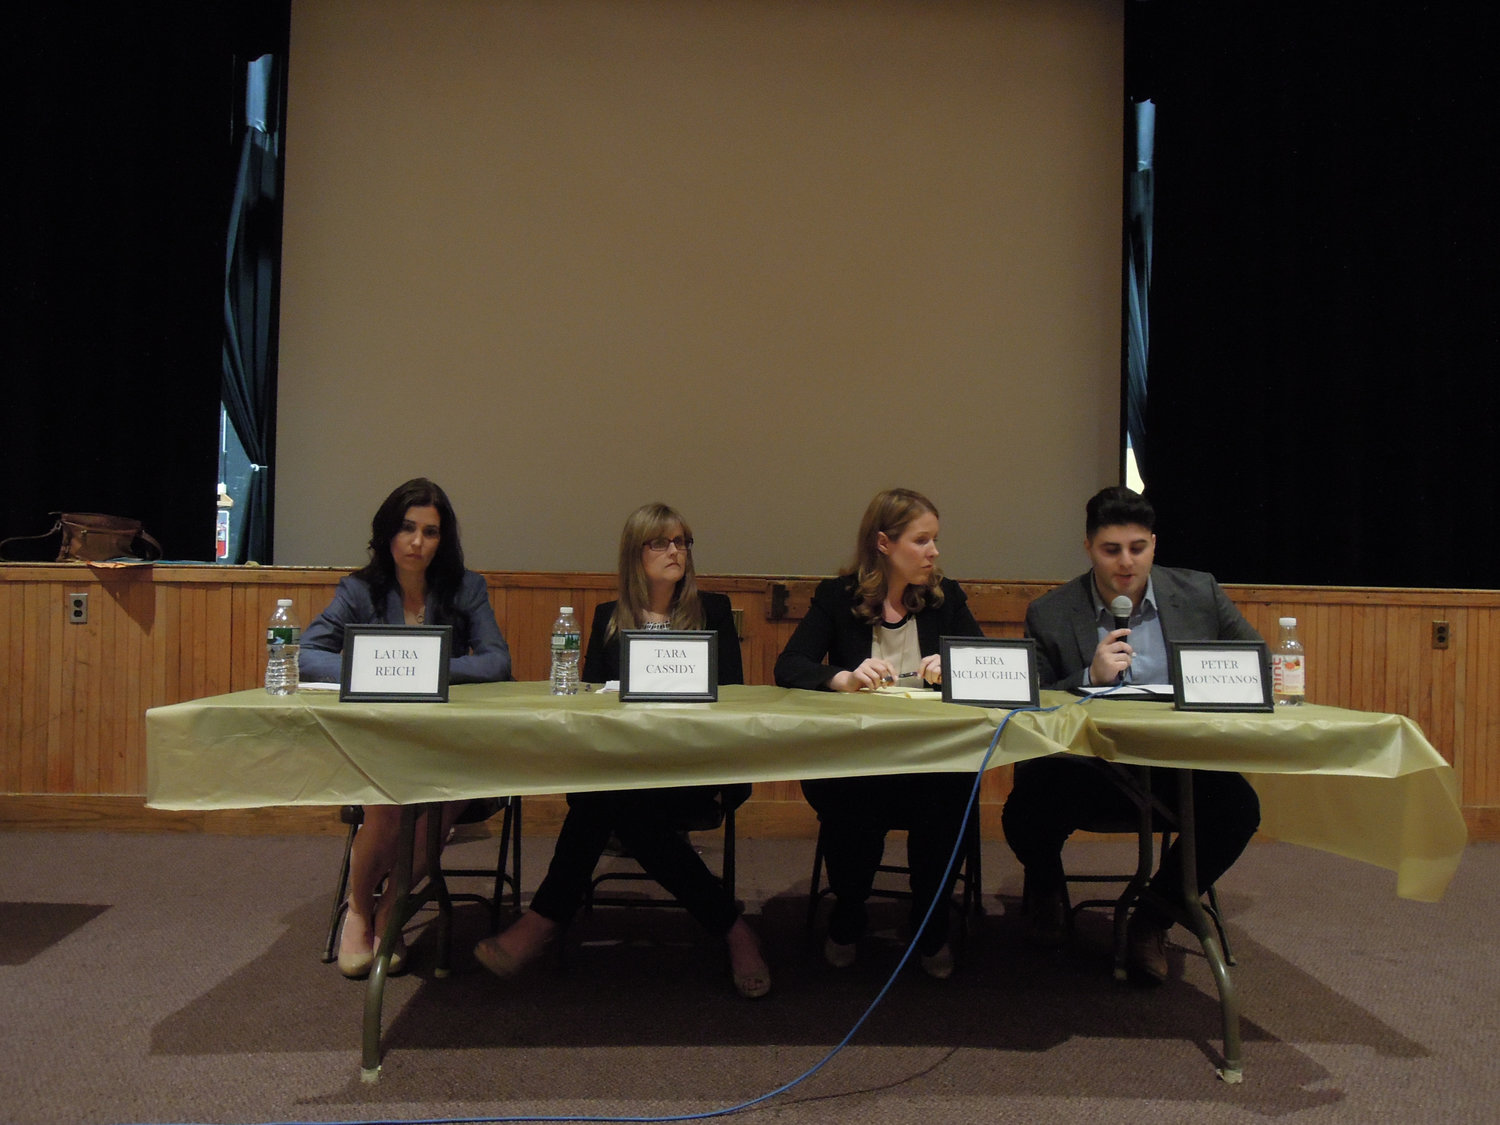 Wantagh Board of Education candidates, from left, challengers Laura Reich and Tara Cassidy, Trustee Kera McLoughlin and board President Peter Mountanos shared their views on the role of a trustee at an event hosted by the district's PTAs at Wantagh High School on May 7.